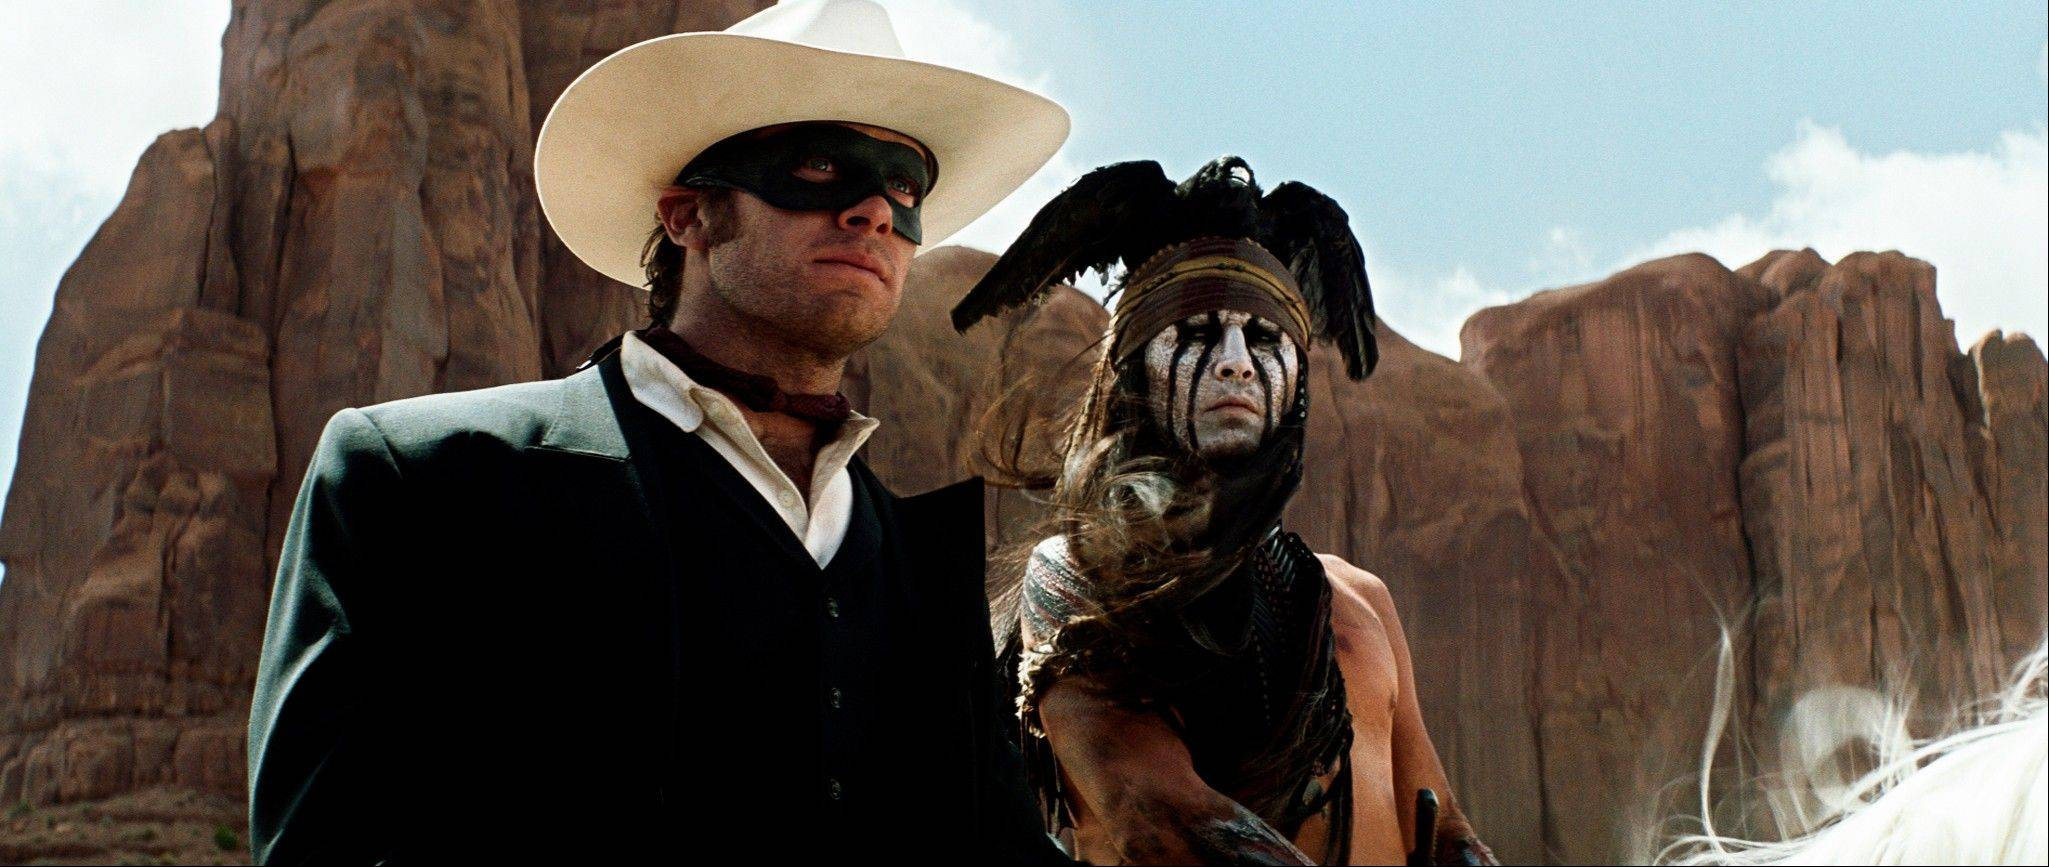 "Armie Hammer, left, as The Lone Ranger, and Johnny Depp, as Tonto, in a scene from the film, ""The Lone Ranger,"" which releases July 3."